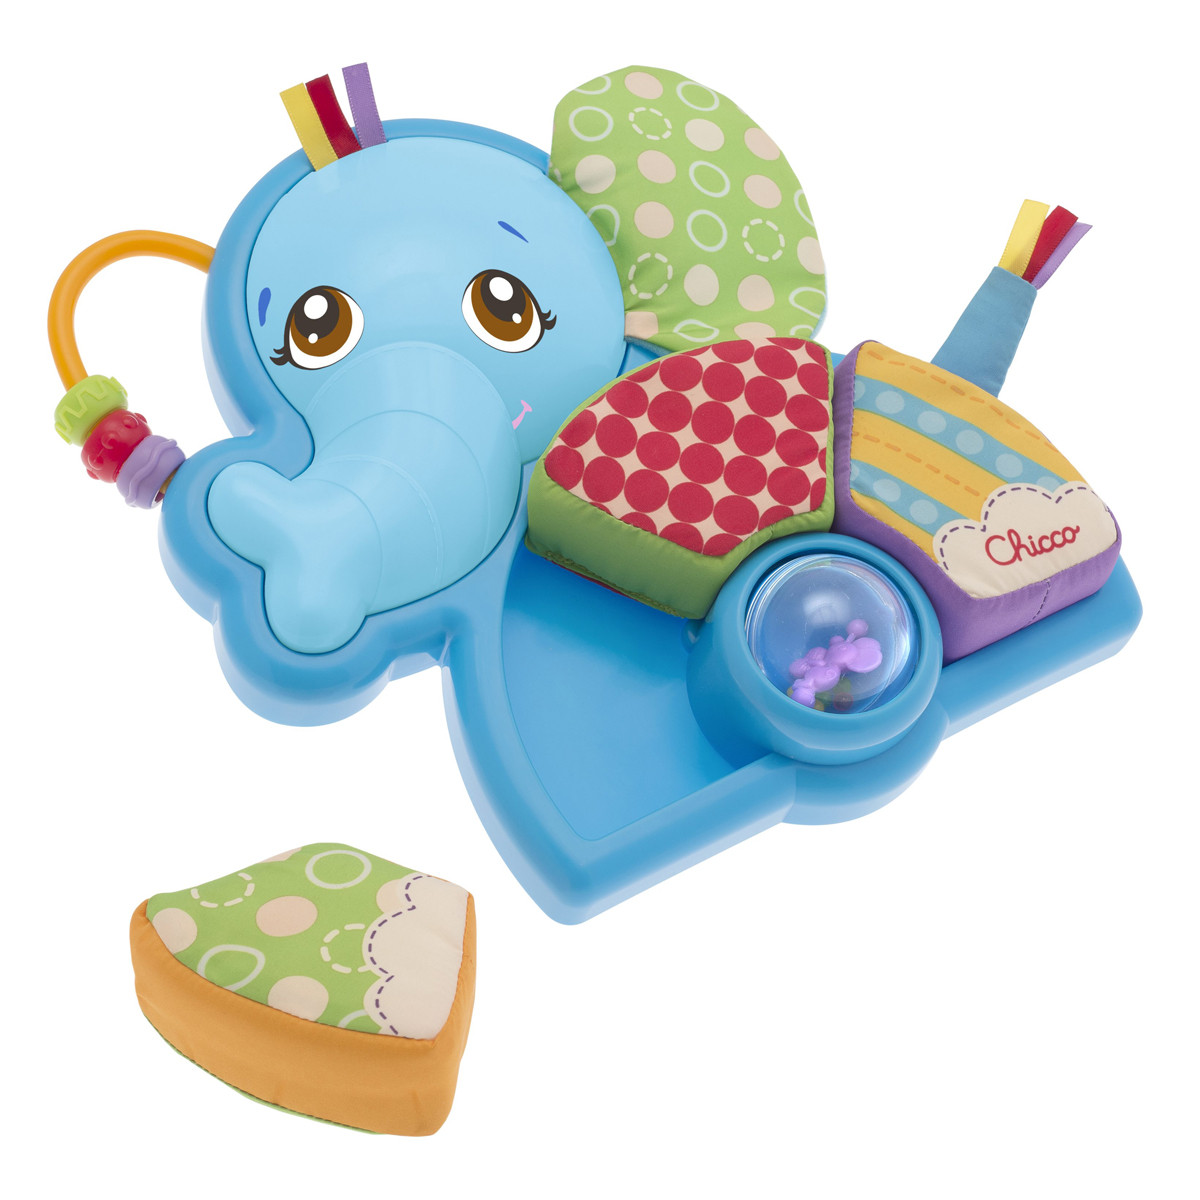 Chicco Mr. Elephant puzzle